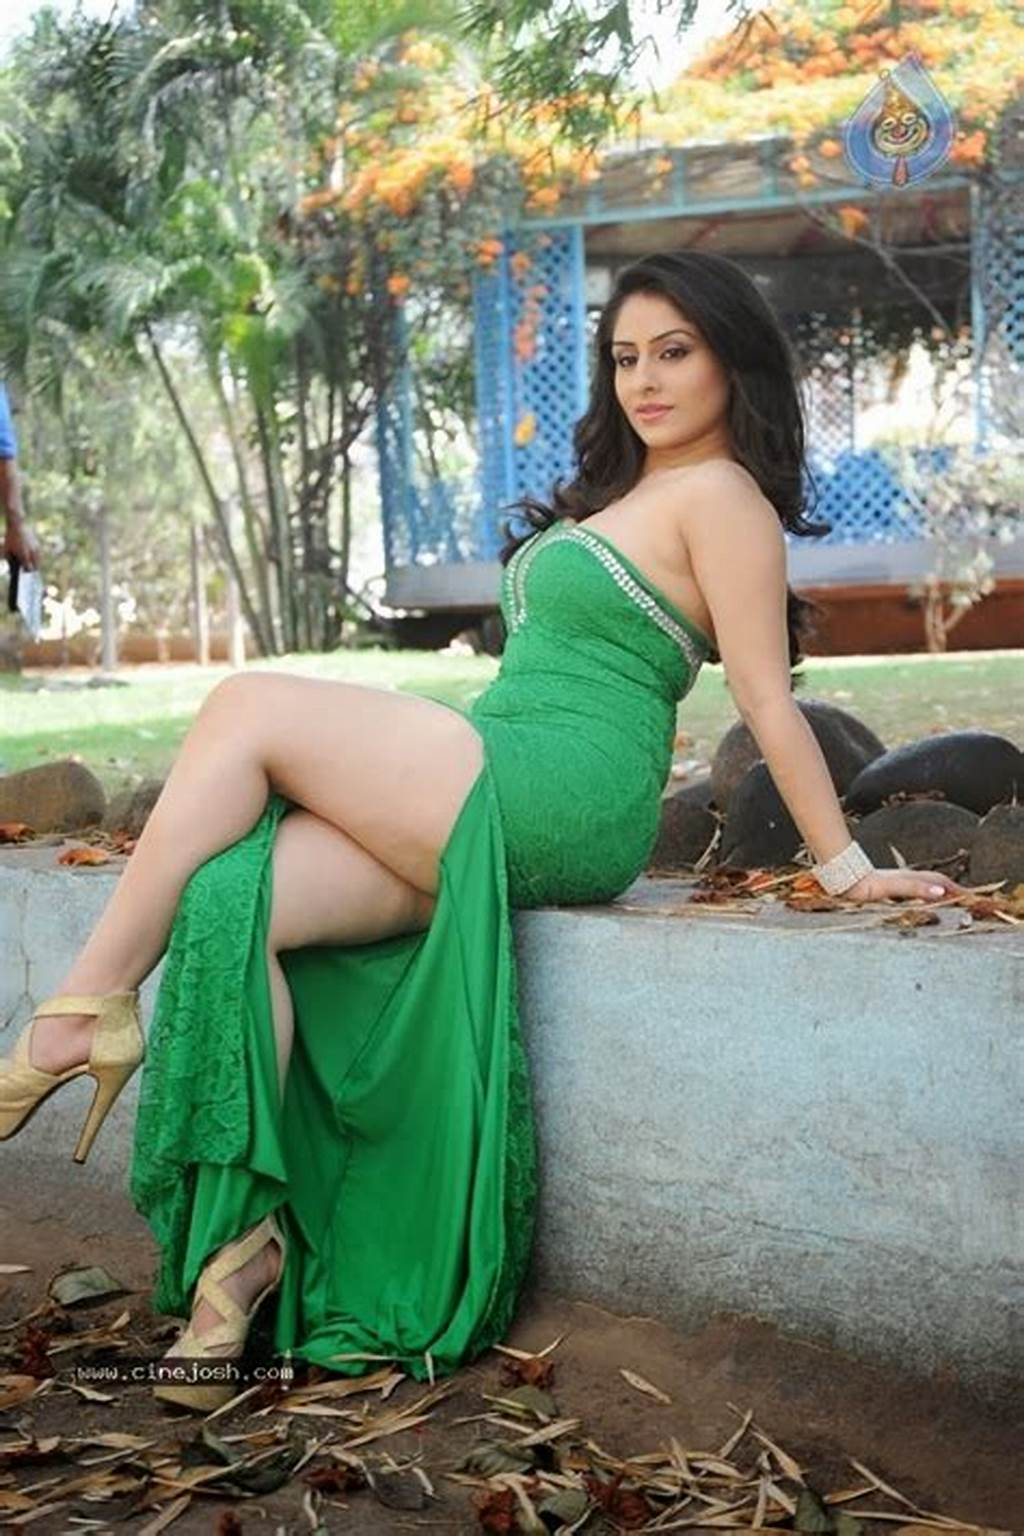 #Nude #Indian #Girls #And #Bhabhi #Pictures #Ankita #Sharma #South